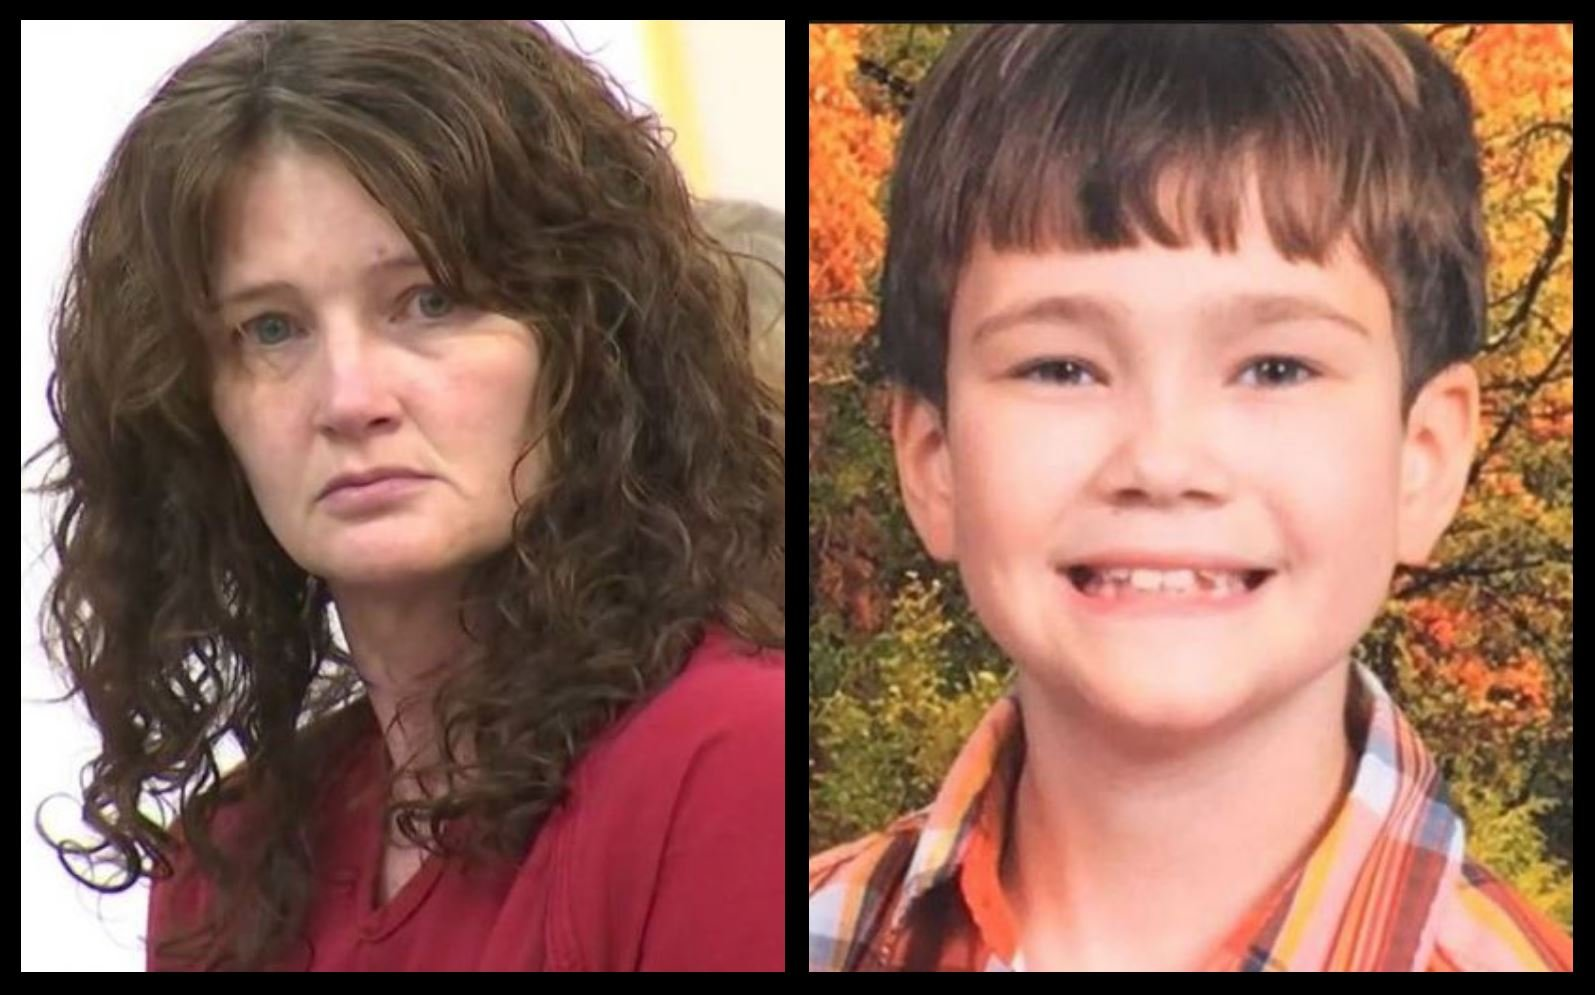 """Amber Lynn James is charged with first-degree murder in the death of Ryan Rosales, who she told Kitsap County sheriff's investigators she killed to """"save"""" and """"protect"""" him from people she believed were following and threatening them."""